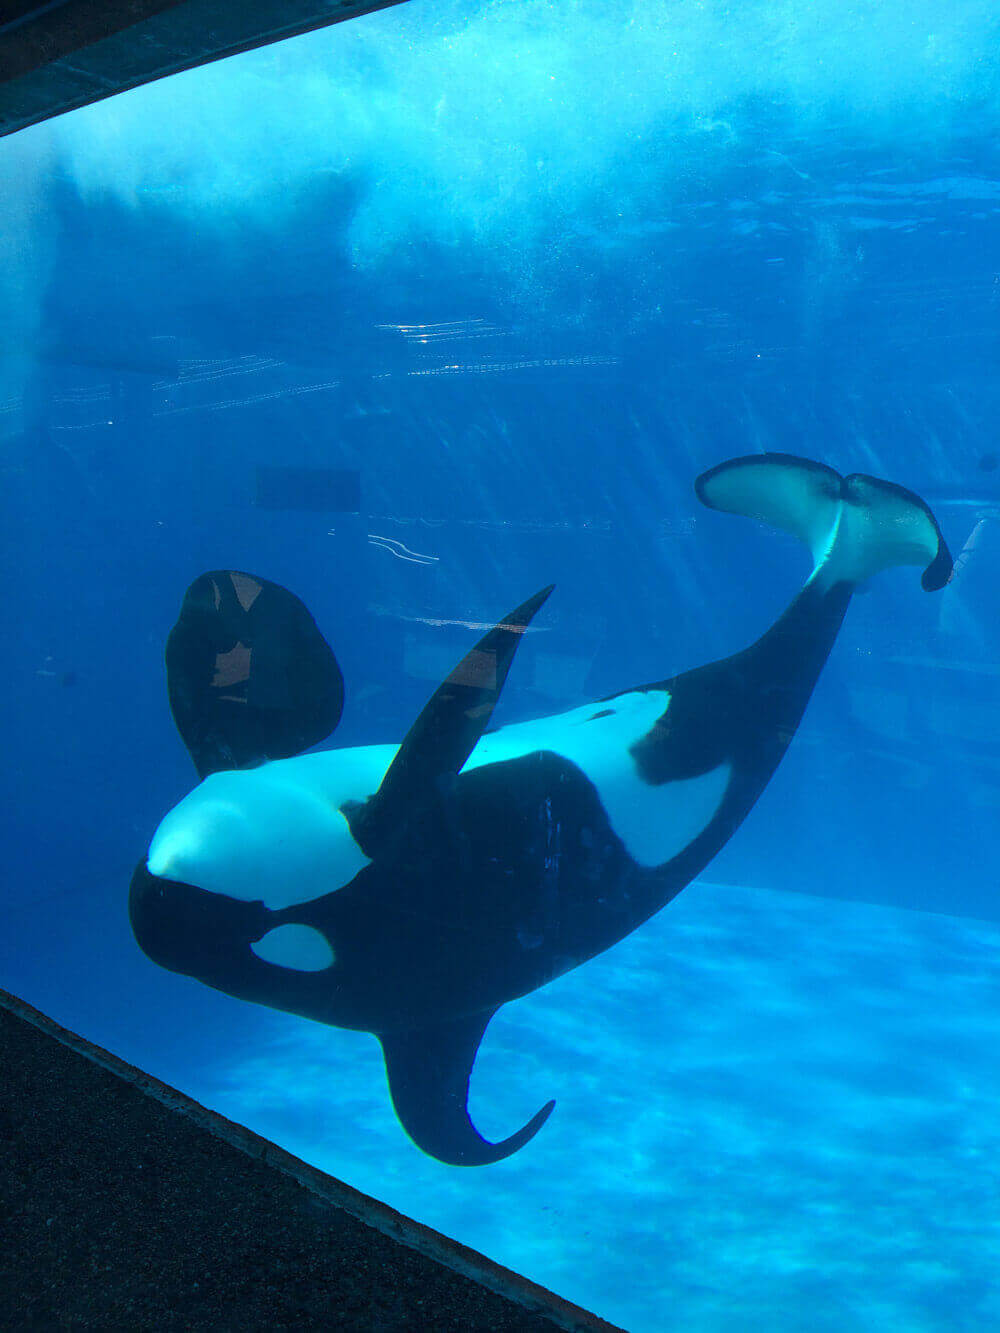 18 things that led seaworld to stop breeding orcas - seaworld of hurt